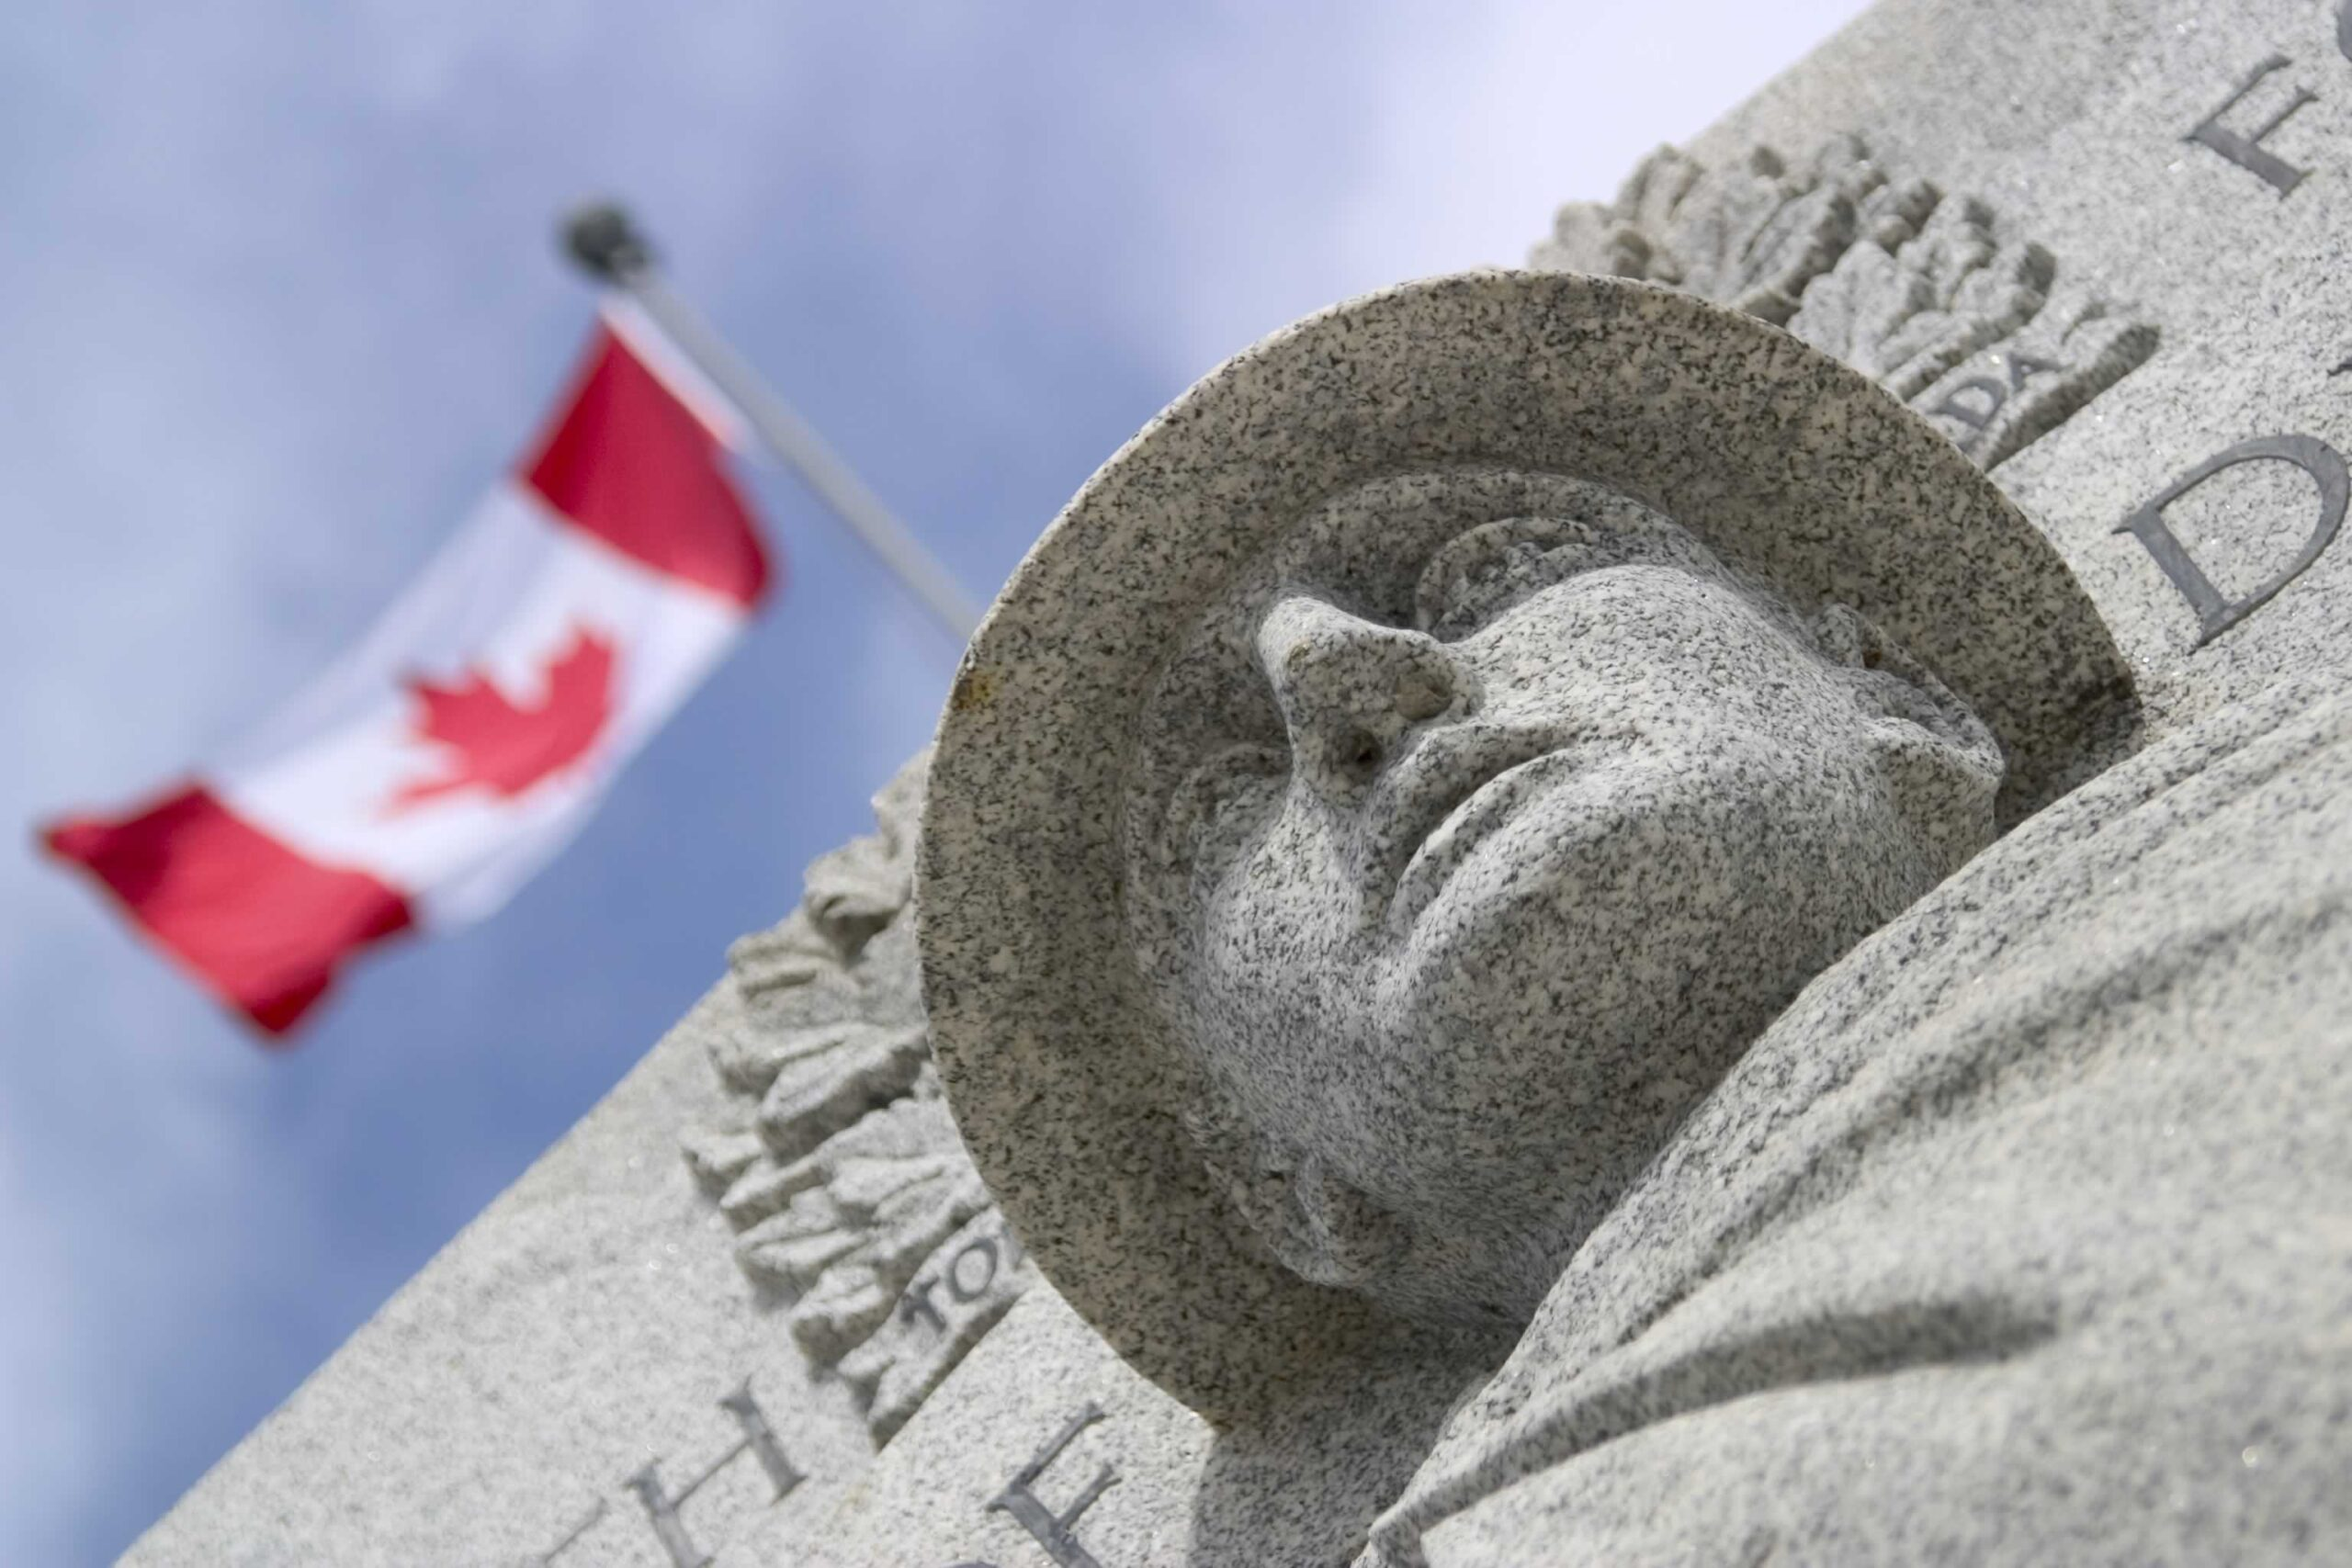 War memorial with Canadian flag in the background.